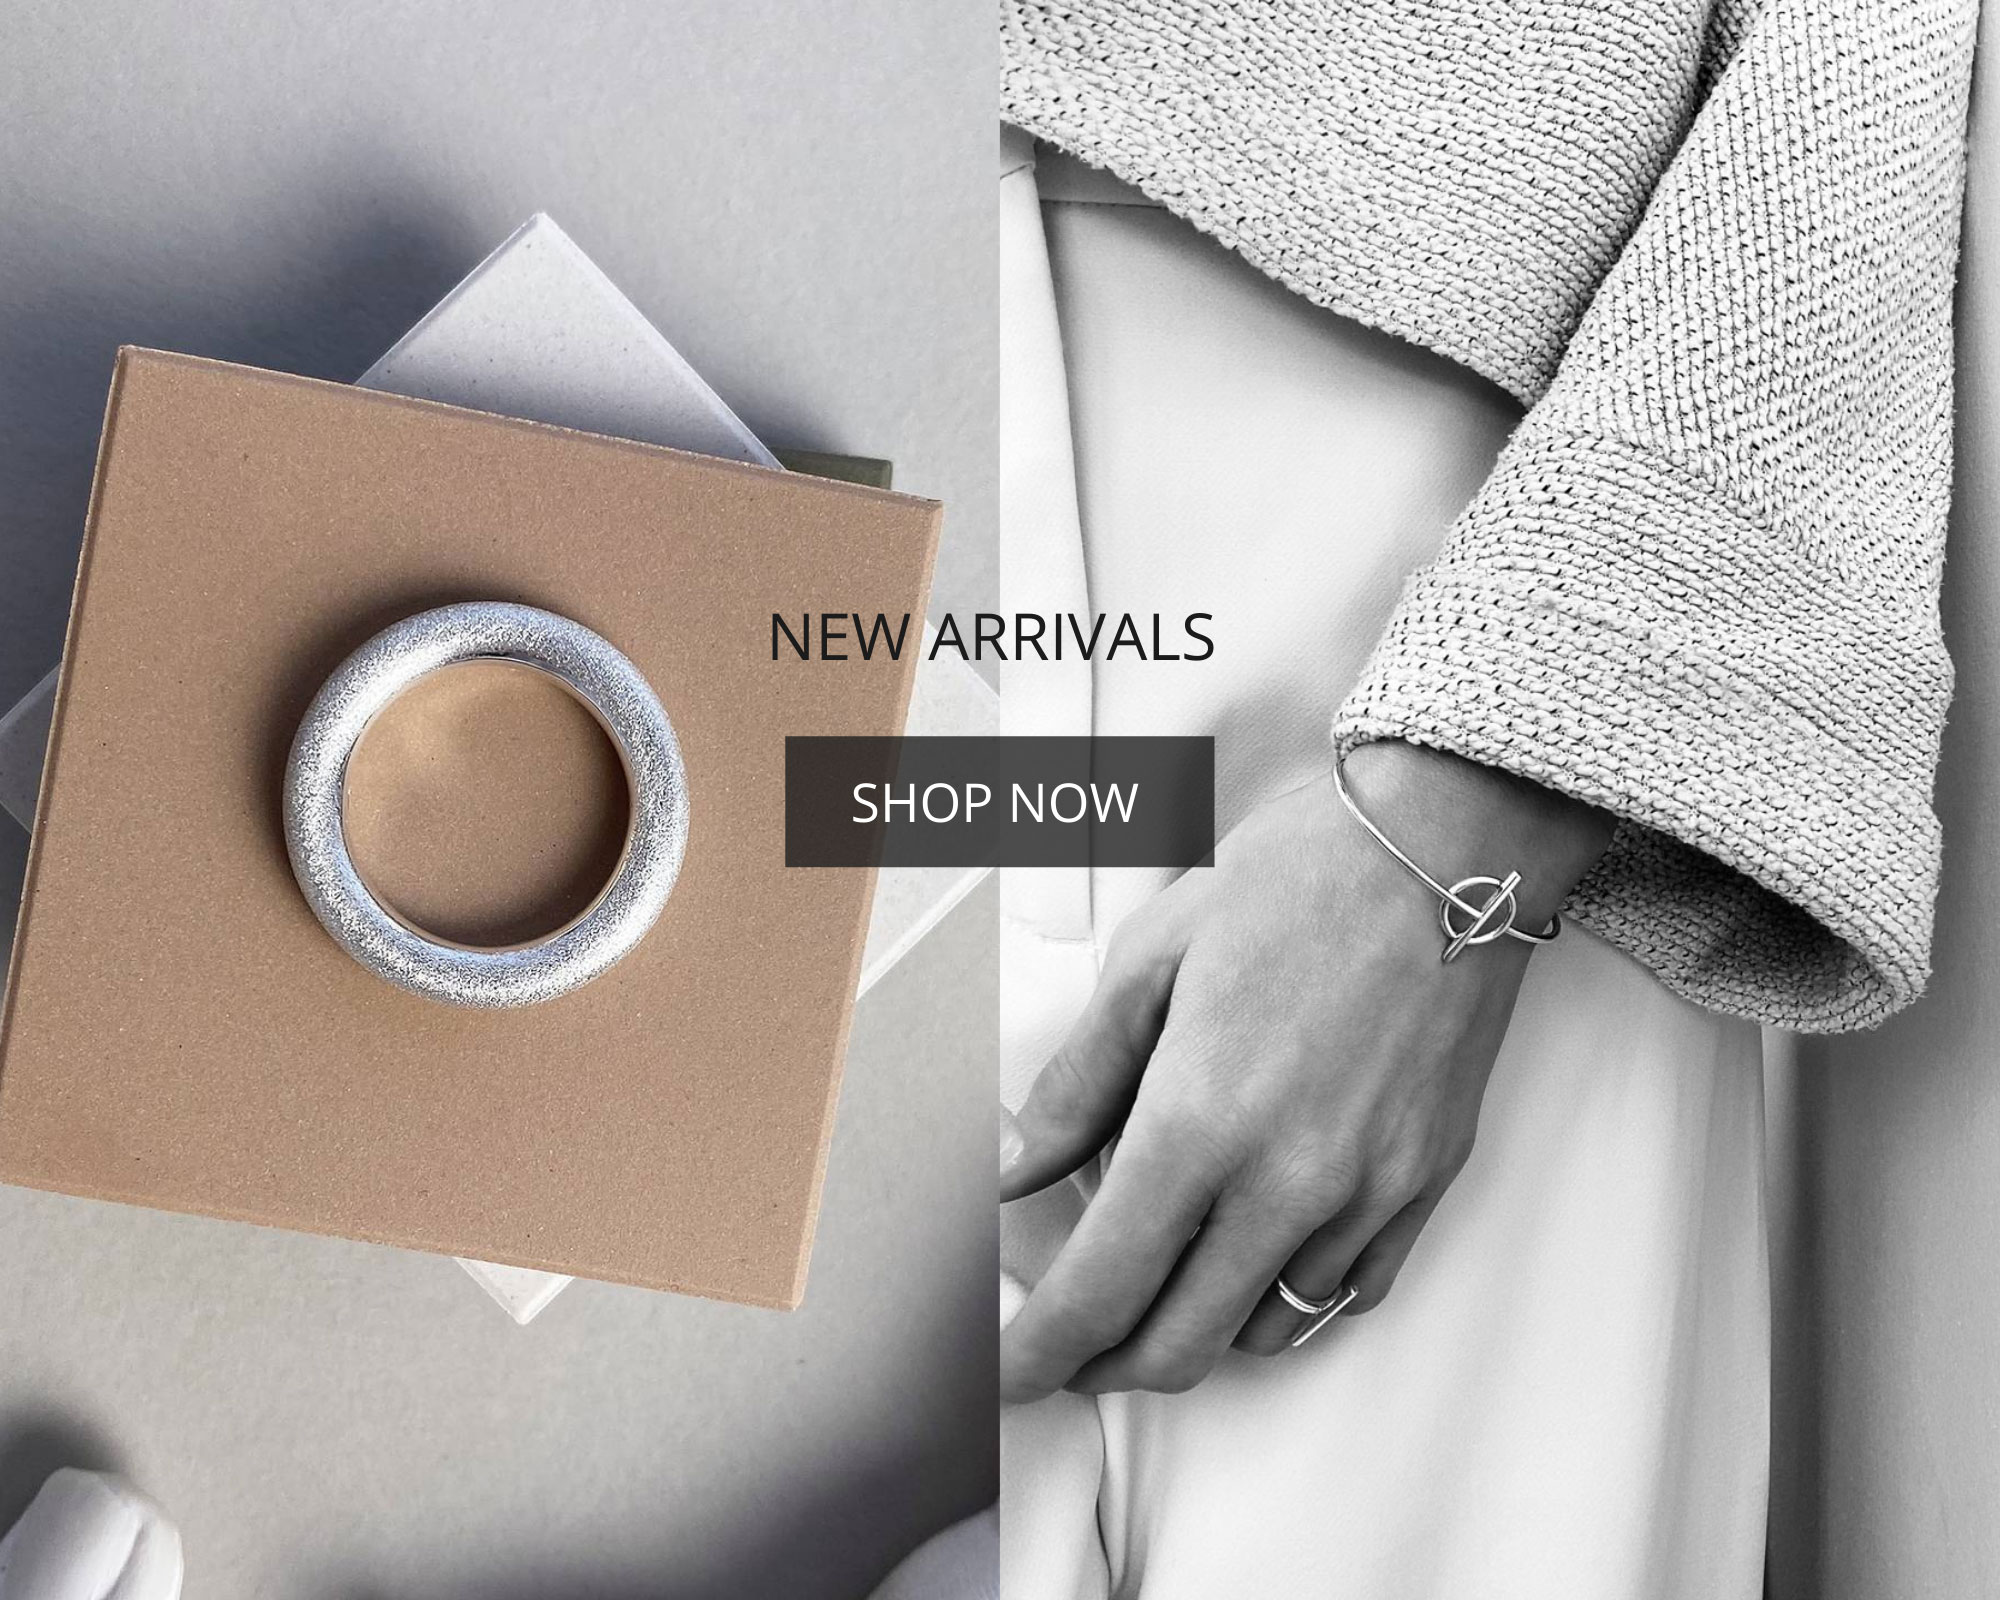 Silver jewellery in Scandinavian design by Mila Silver